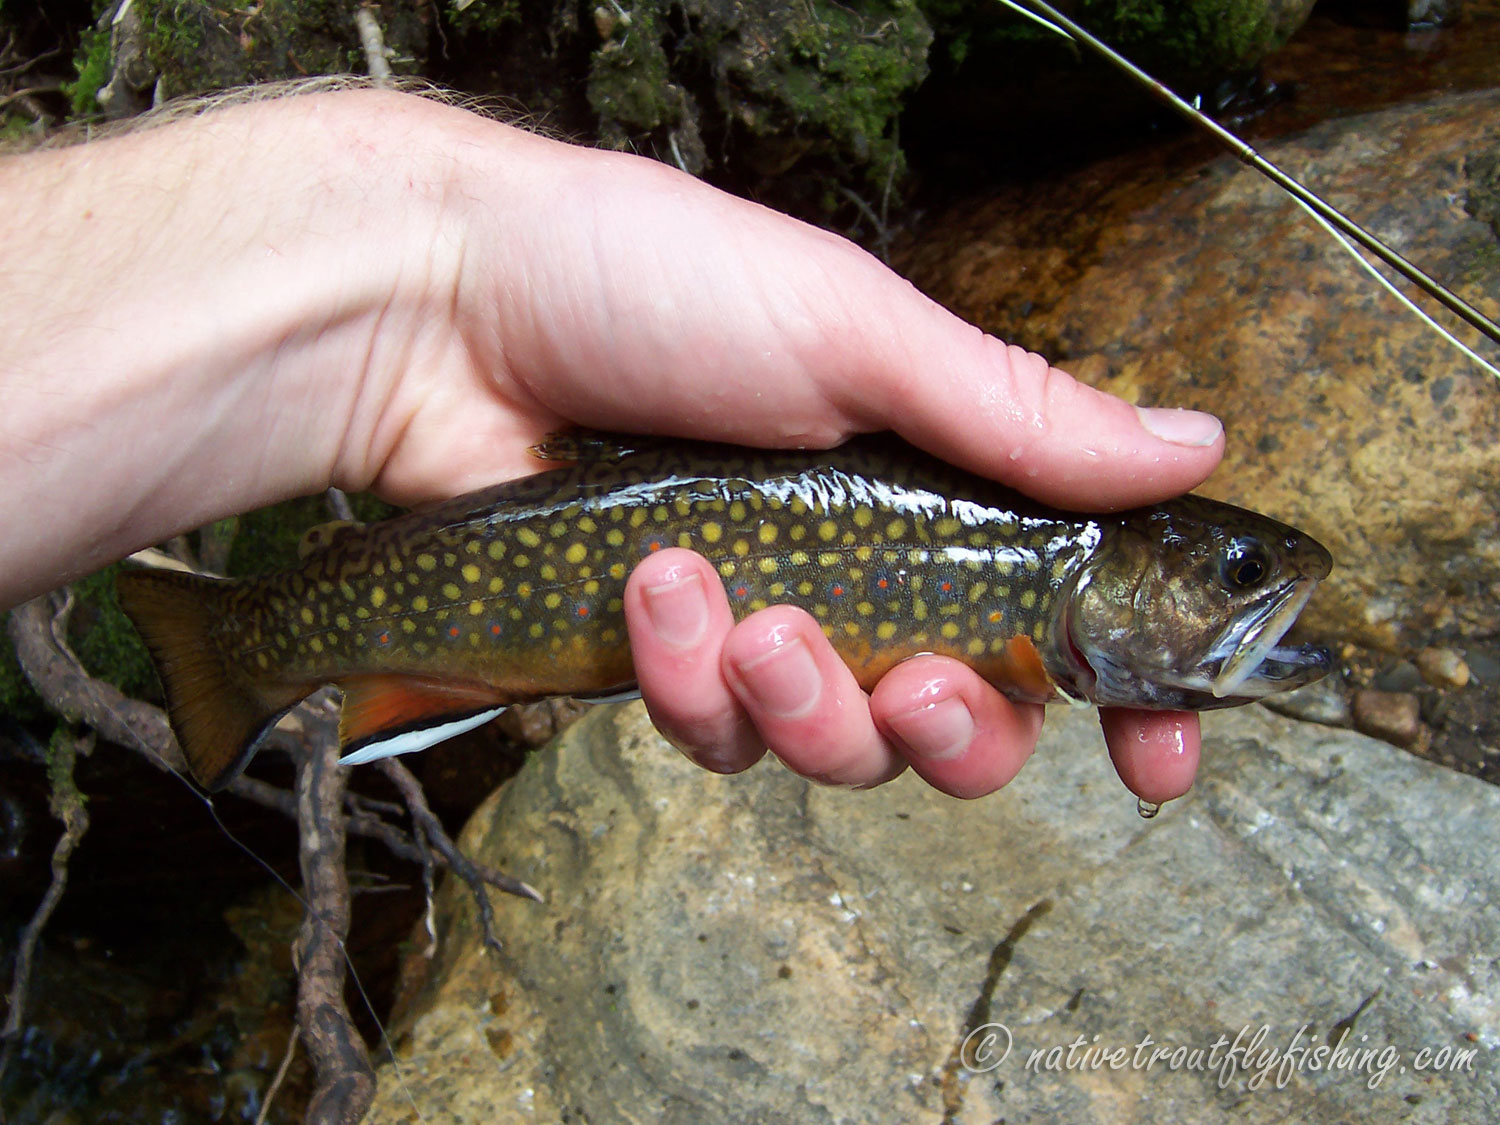 Native Trout Fly Fishing: Brook Trout - photo#40